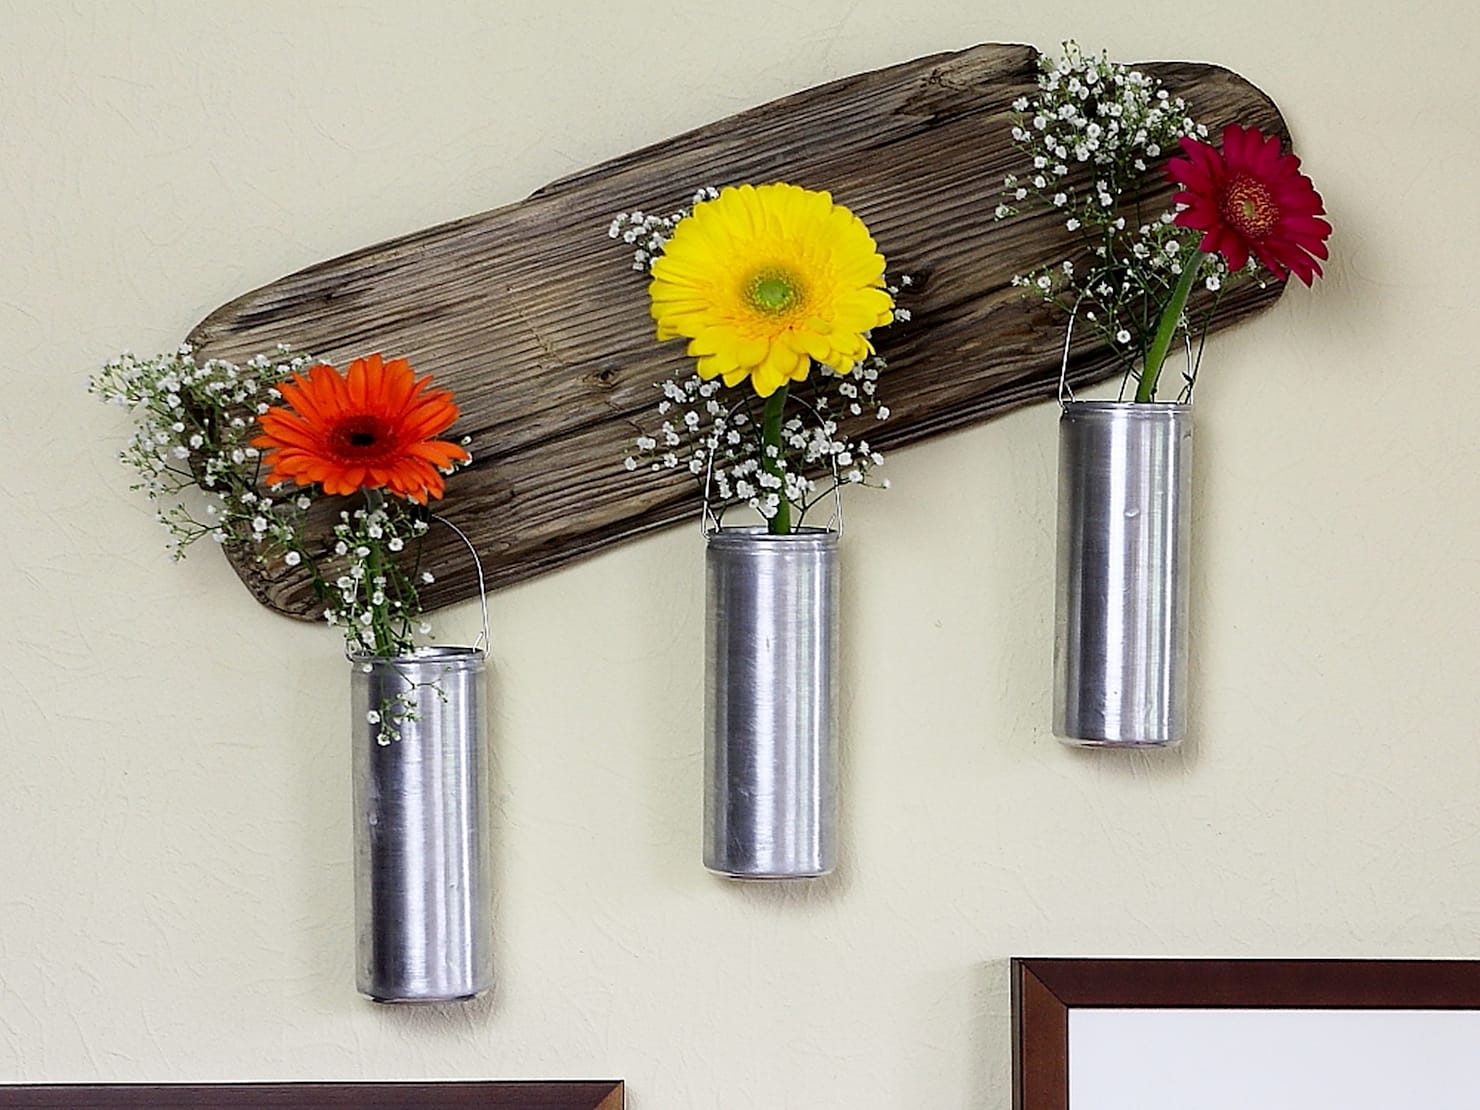 14 easy DIY ideas for small budgets